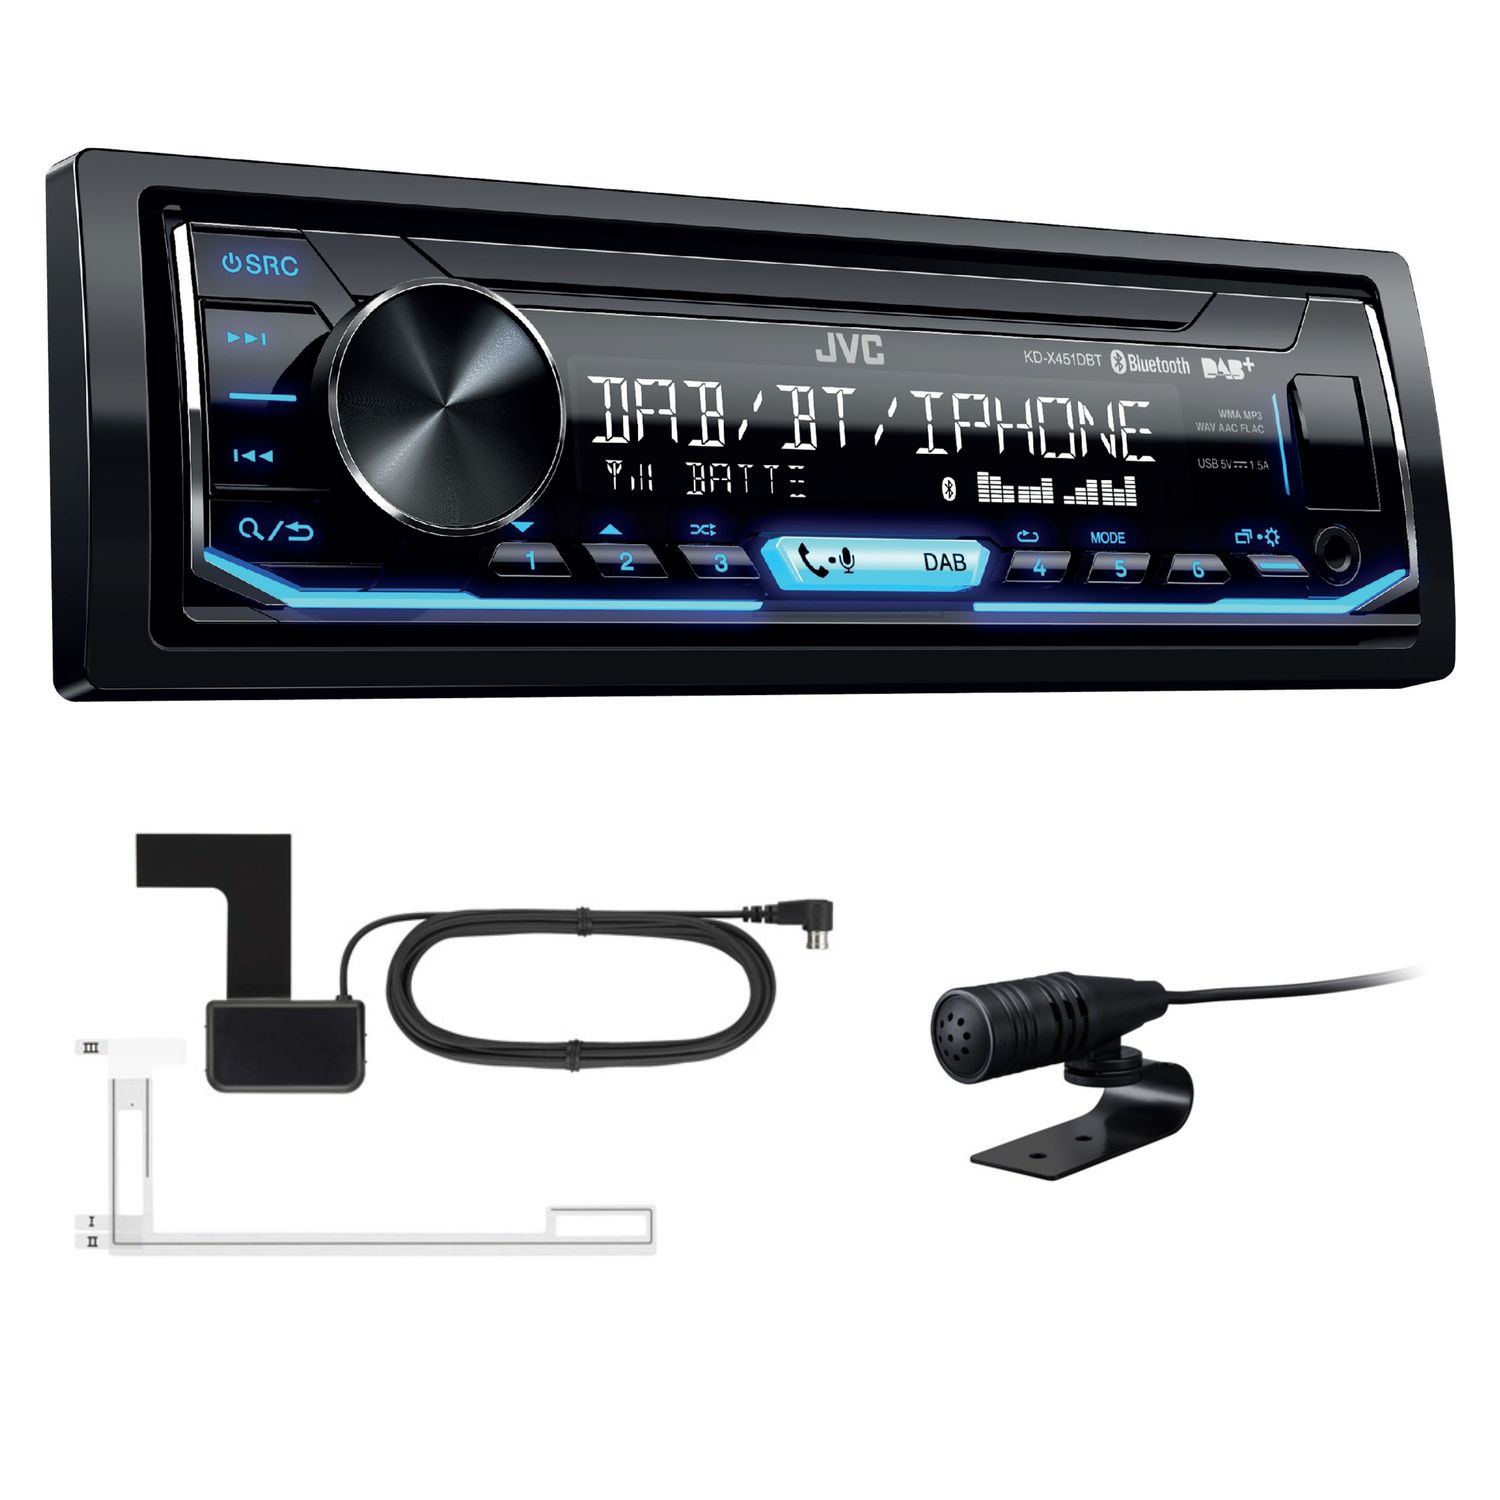 jvc kd x451dbt usb aux mp3 autoradio digitalradio. Black Bedroom Furniture Sets. Home Design Ideas